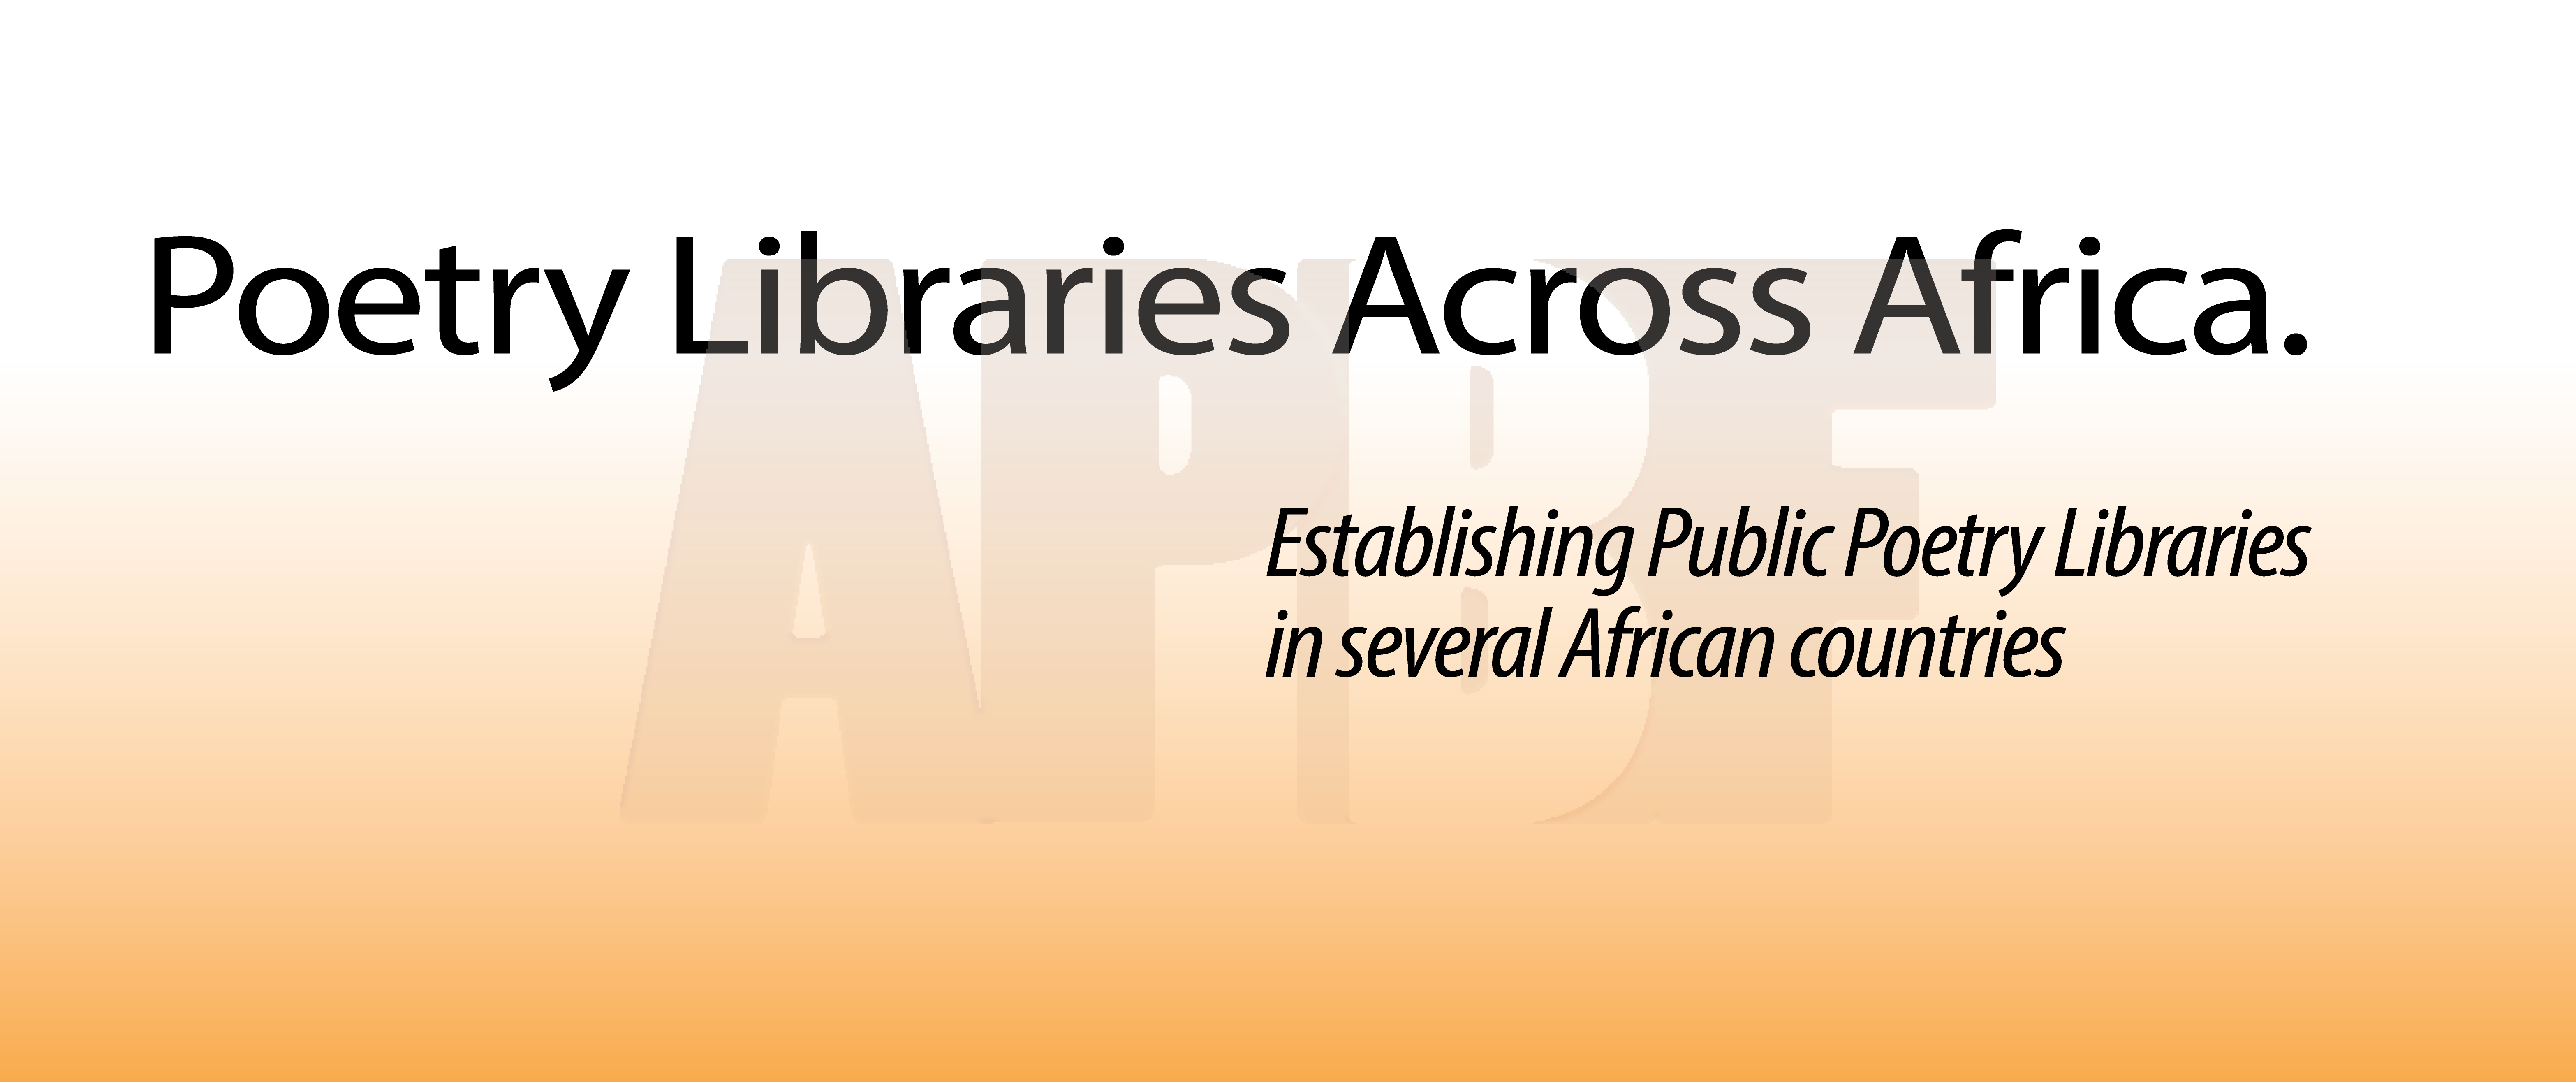 African Poetry Libraries